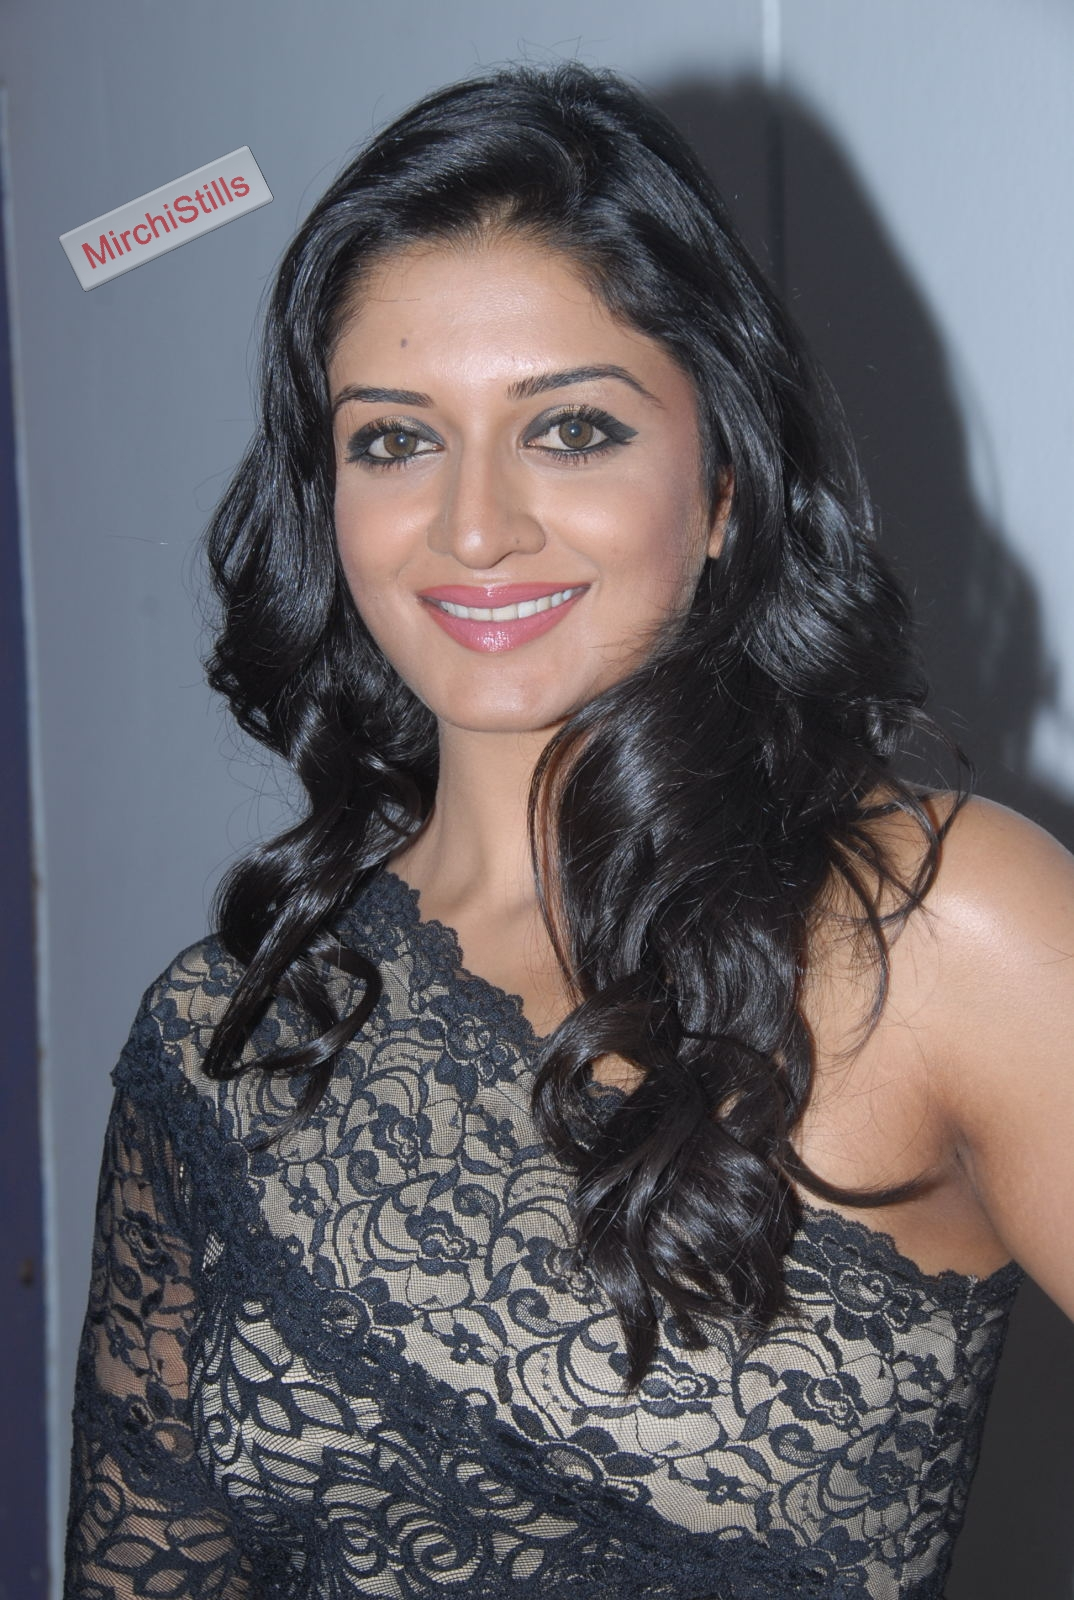 Vimala Raman WOW what Stunning Black Gown Lovely Beauty Must See (10)002.jpg